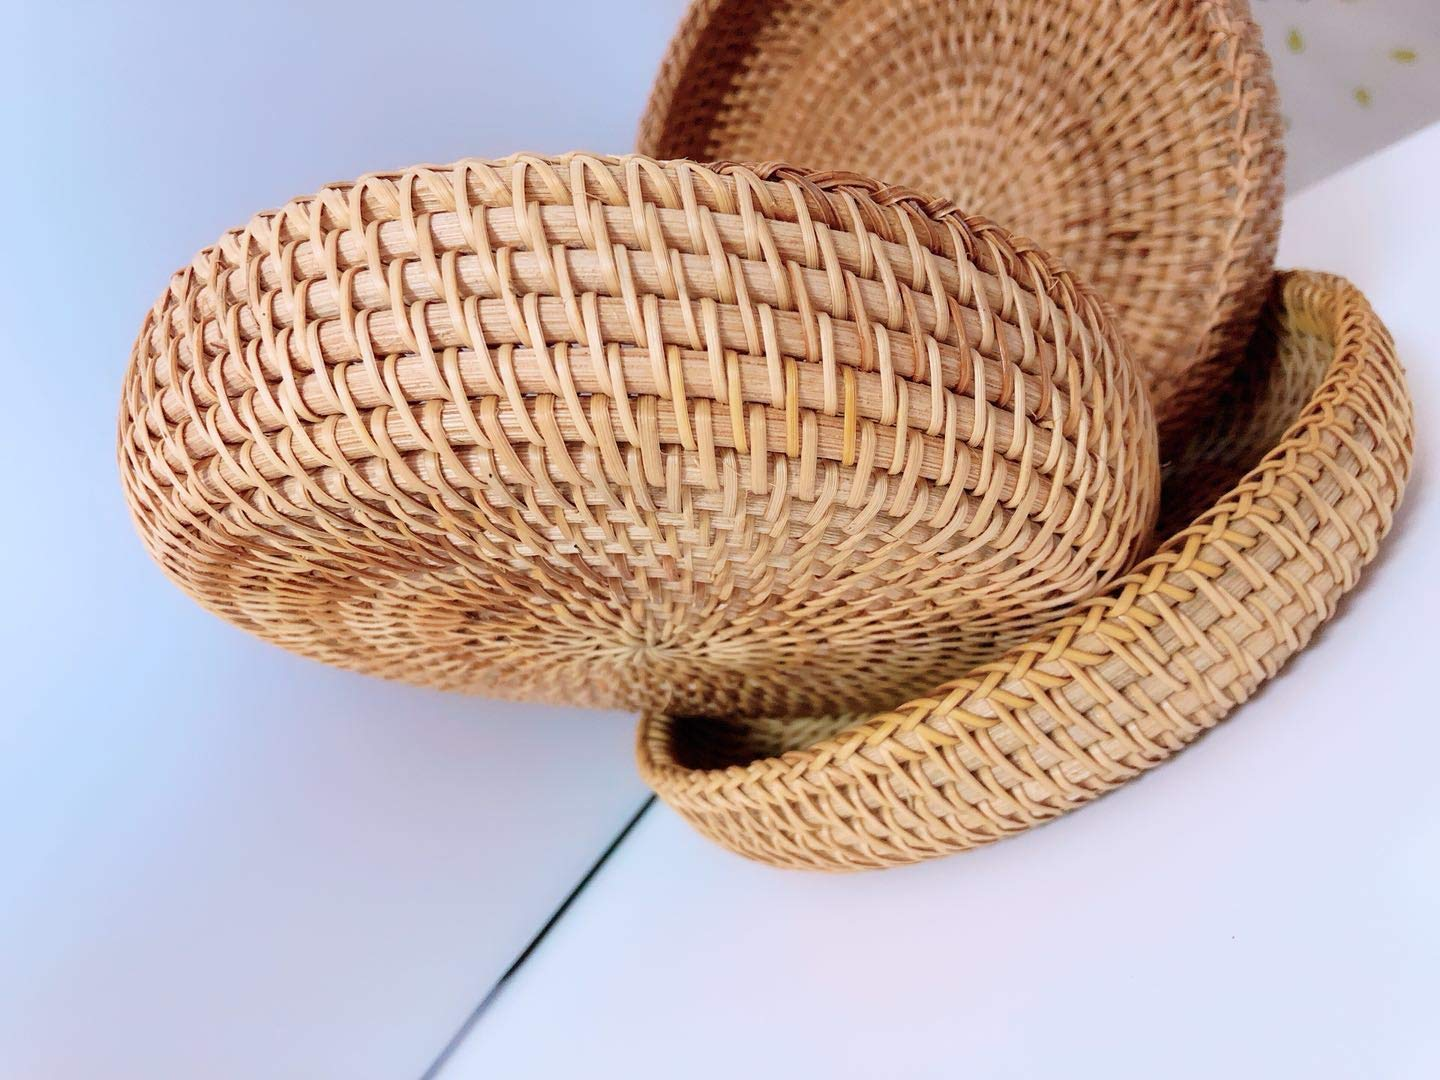 Rattan Basket Dried Fruit Basket Woven Basket Basket For Gifts Fruit Baskets Wicker Picnic Basket Wicker Basket Candy Basket 2019 Organizer Shallow Basket Gift Baskets For Women (2PCs wicker basekt) by TIMESFRIEND (Image #5)